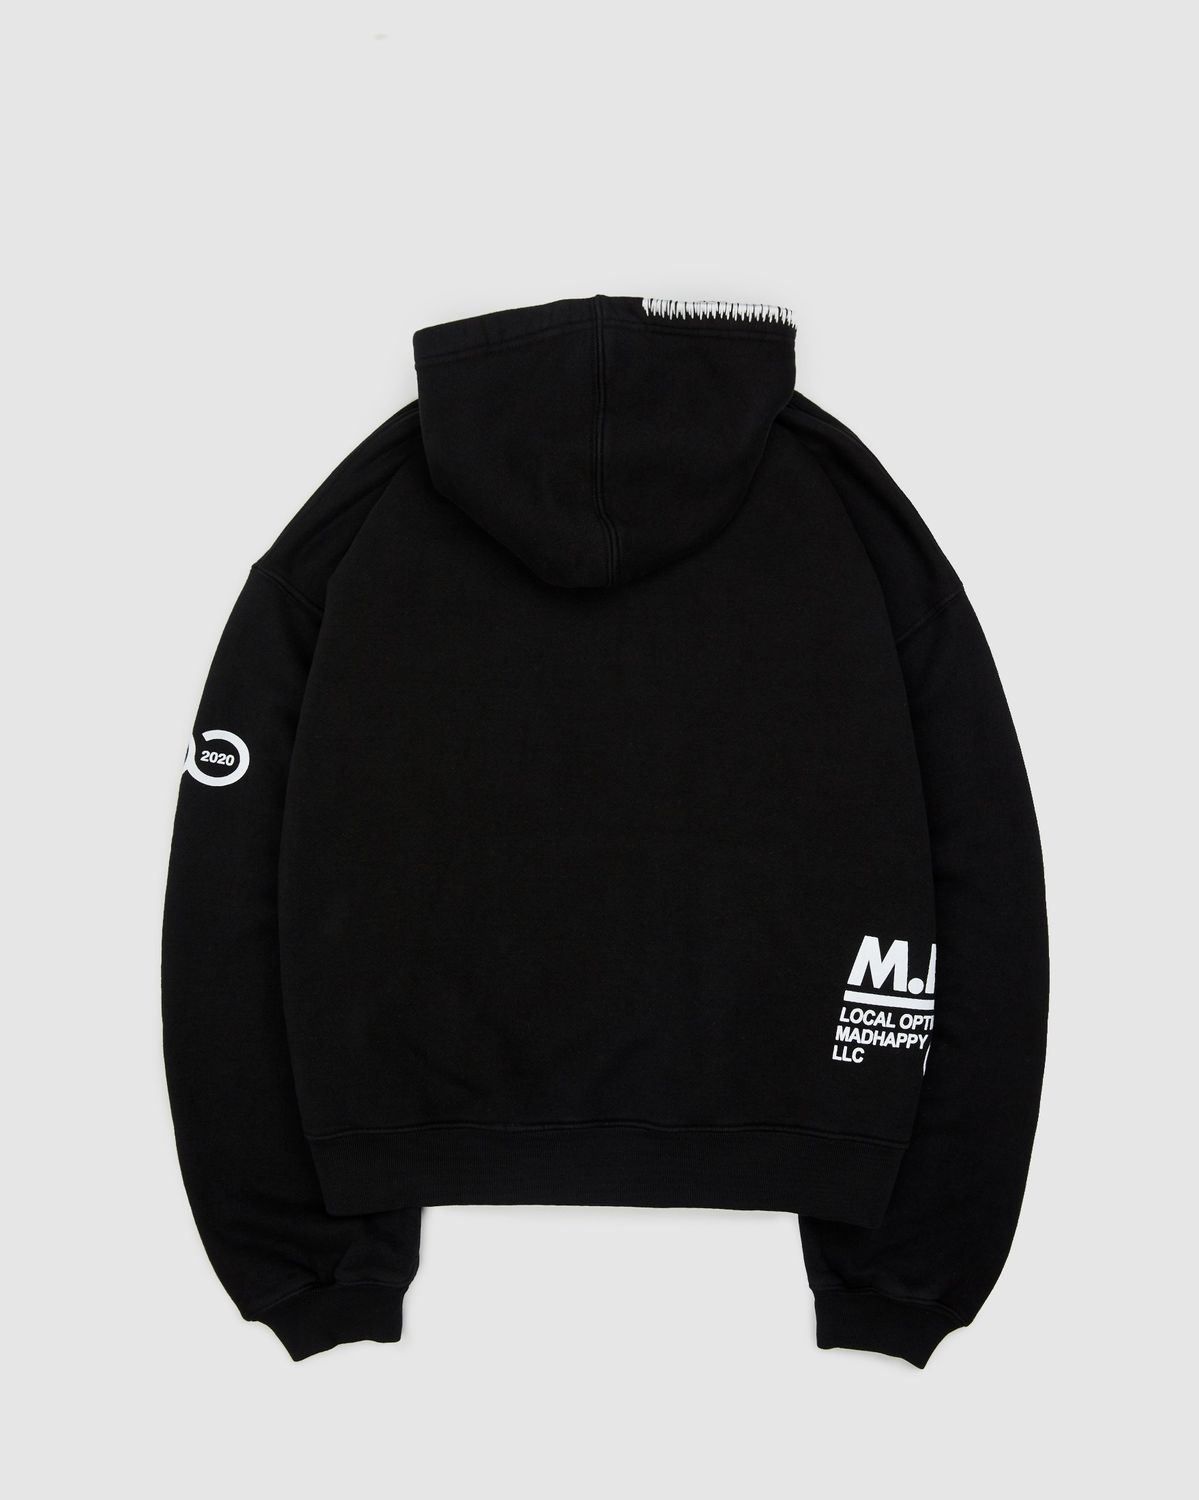 Madhappy x colette Mon Amour - Hoodie Black - Image 2